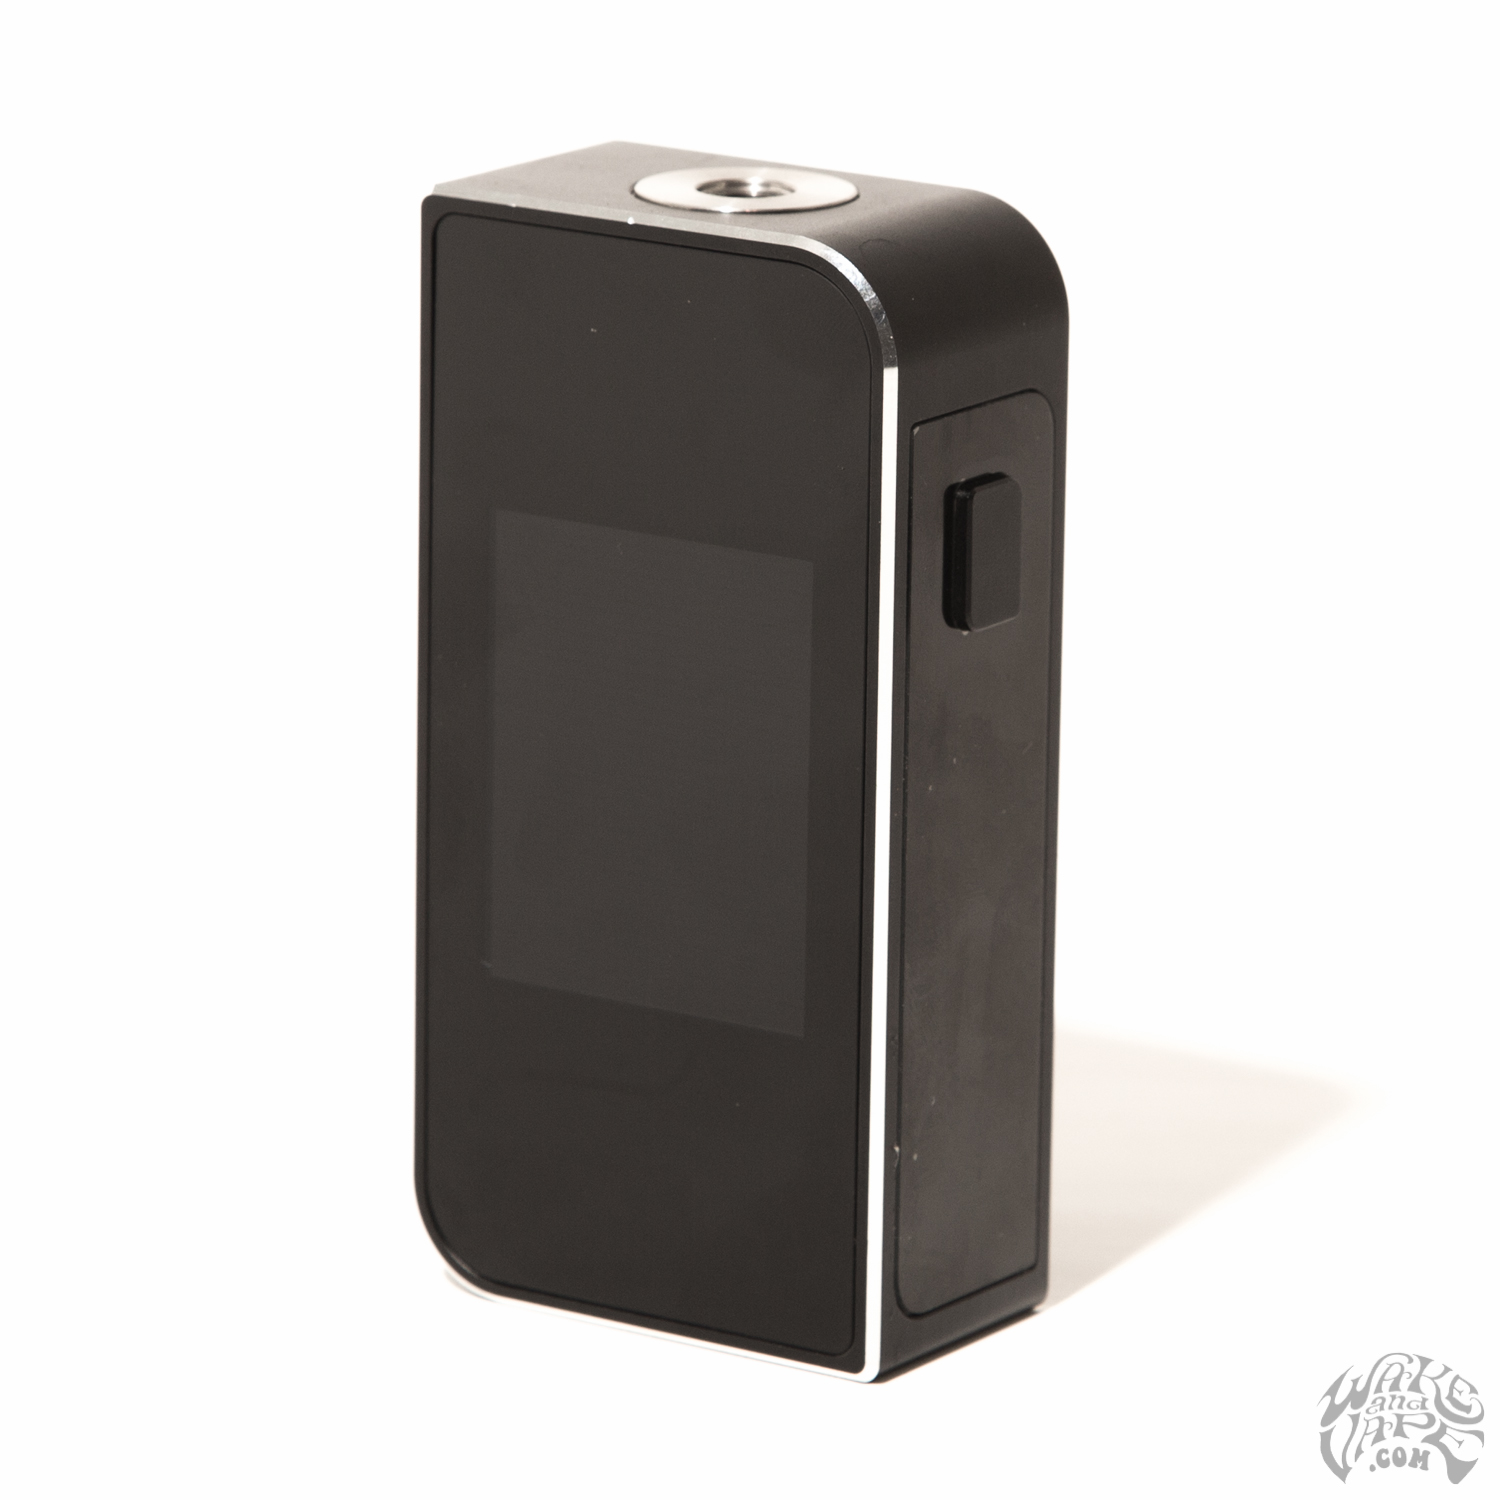 sigelei t touch screen box mod review wake and vape blog spring loaded 510 pins allow instant contact to all rdas rtas tanks you it since the 510 pin is adjustable